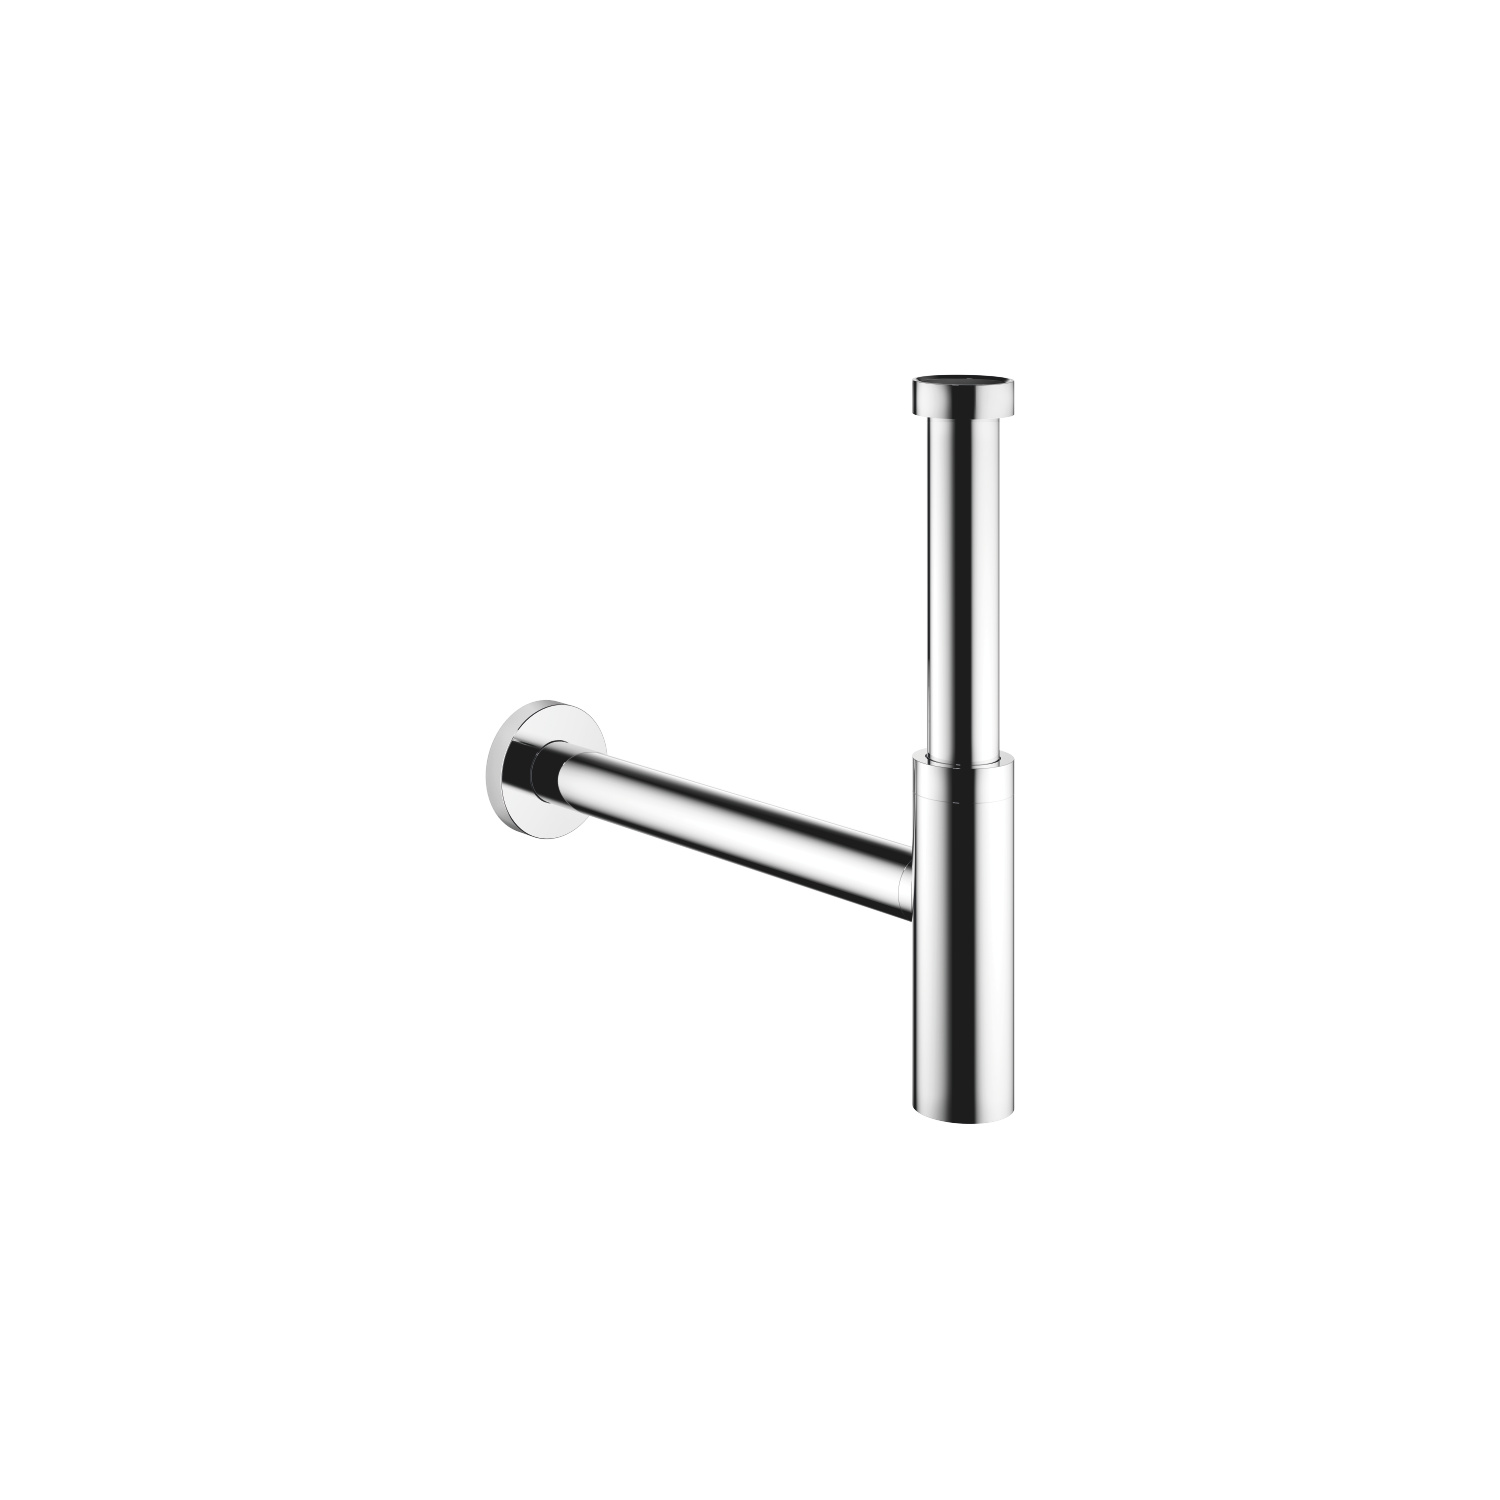 Lavatory siphon - polished chrome